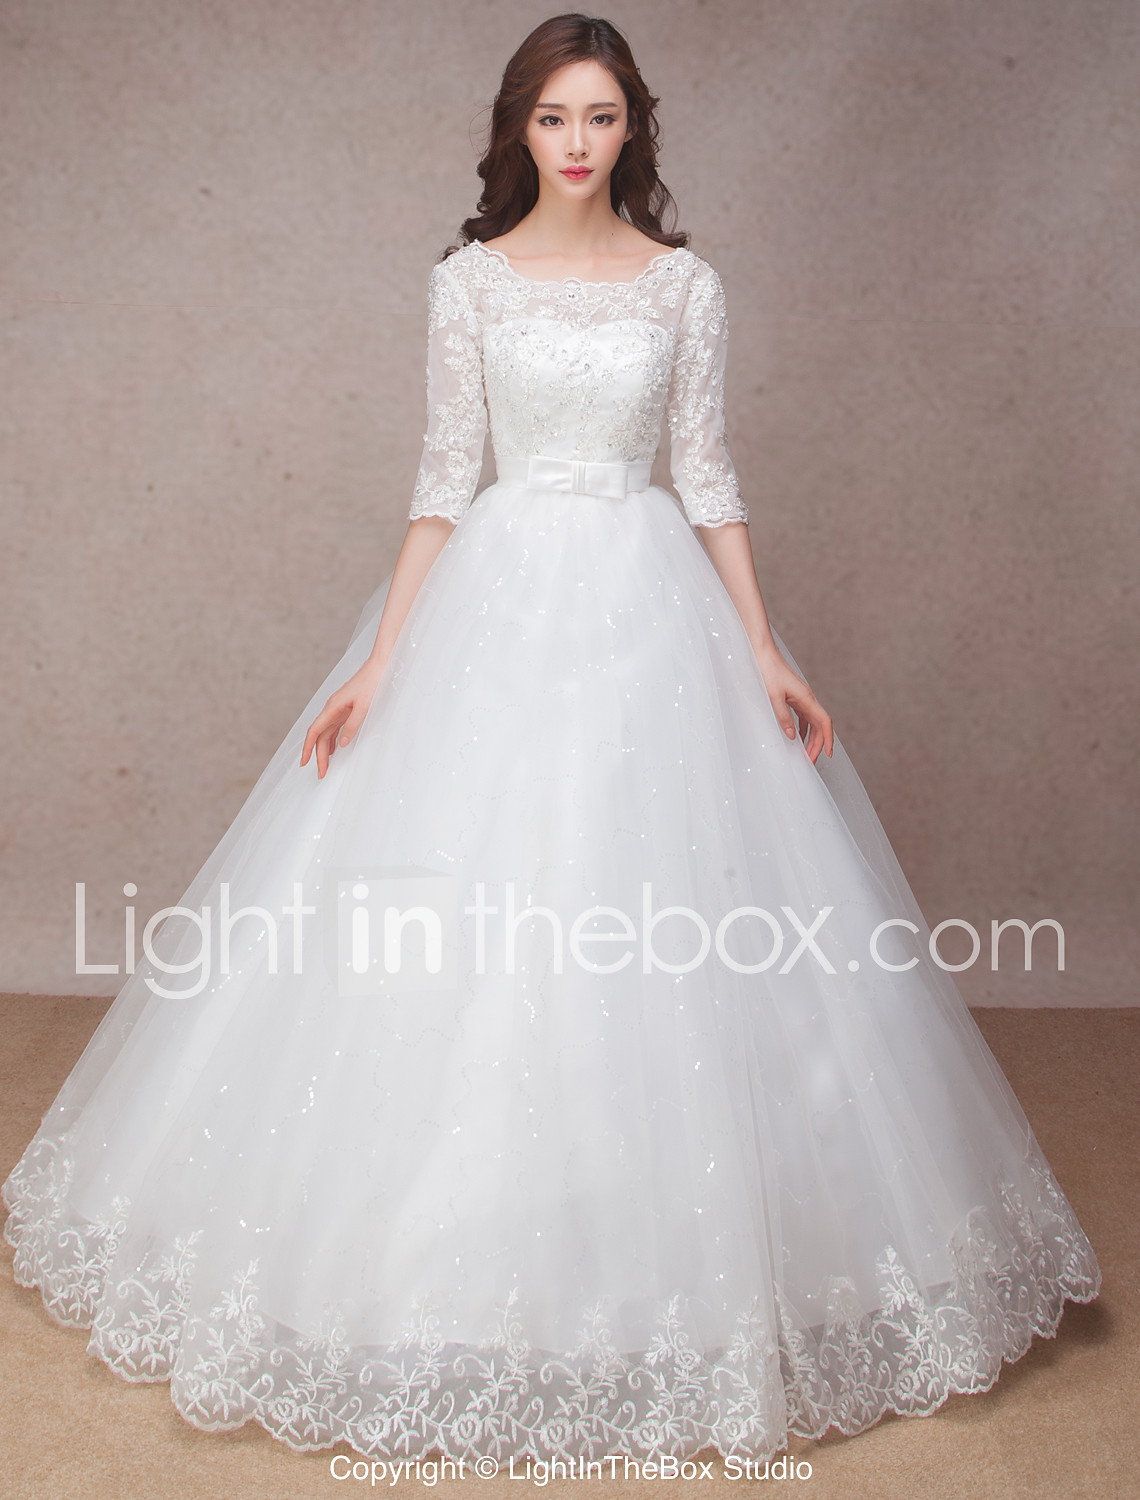 wedding dresses cheapest wedding dresses Princess Wedding Dress Lacy Look Floor length Scoop Lace with Bow Flower Ruffle